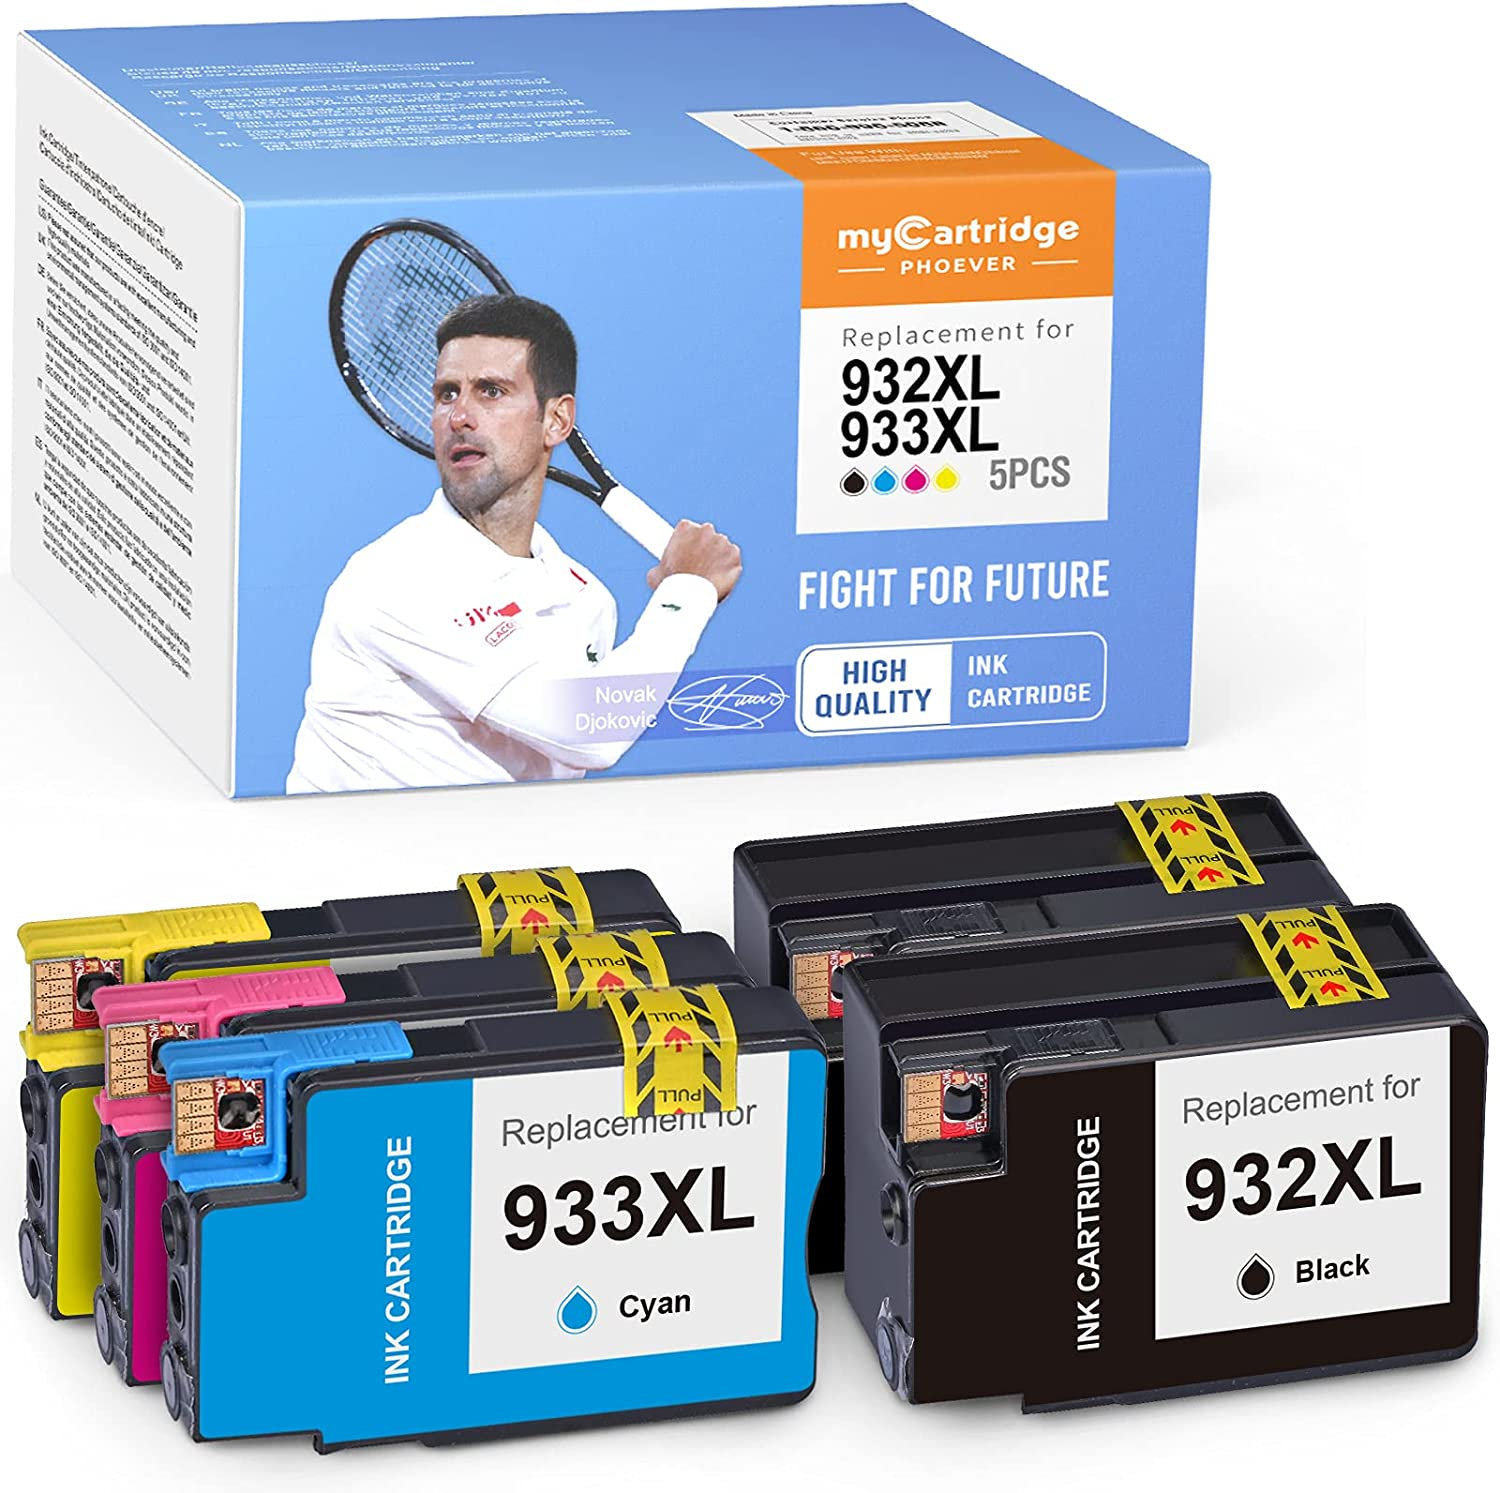 myCartridge PHOEVER Compatible Ink Cartridge Replacement for HP 932XL 933XL 932 XL 933 XL for Officejet 6700 6600 7612 7610 7110 6100 (2 Black, 1 Cyan, 1 Magenta, 1 Yellow, 5-Pack)